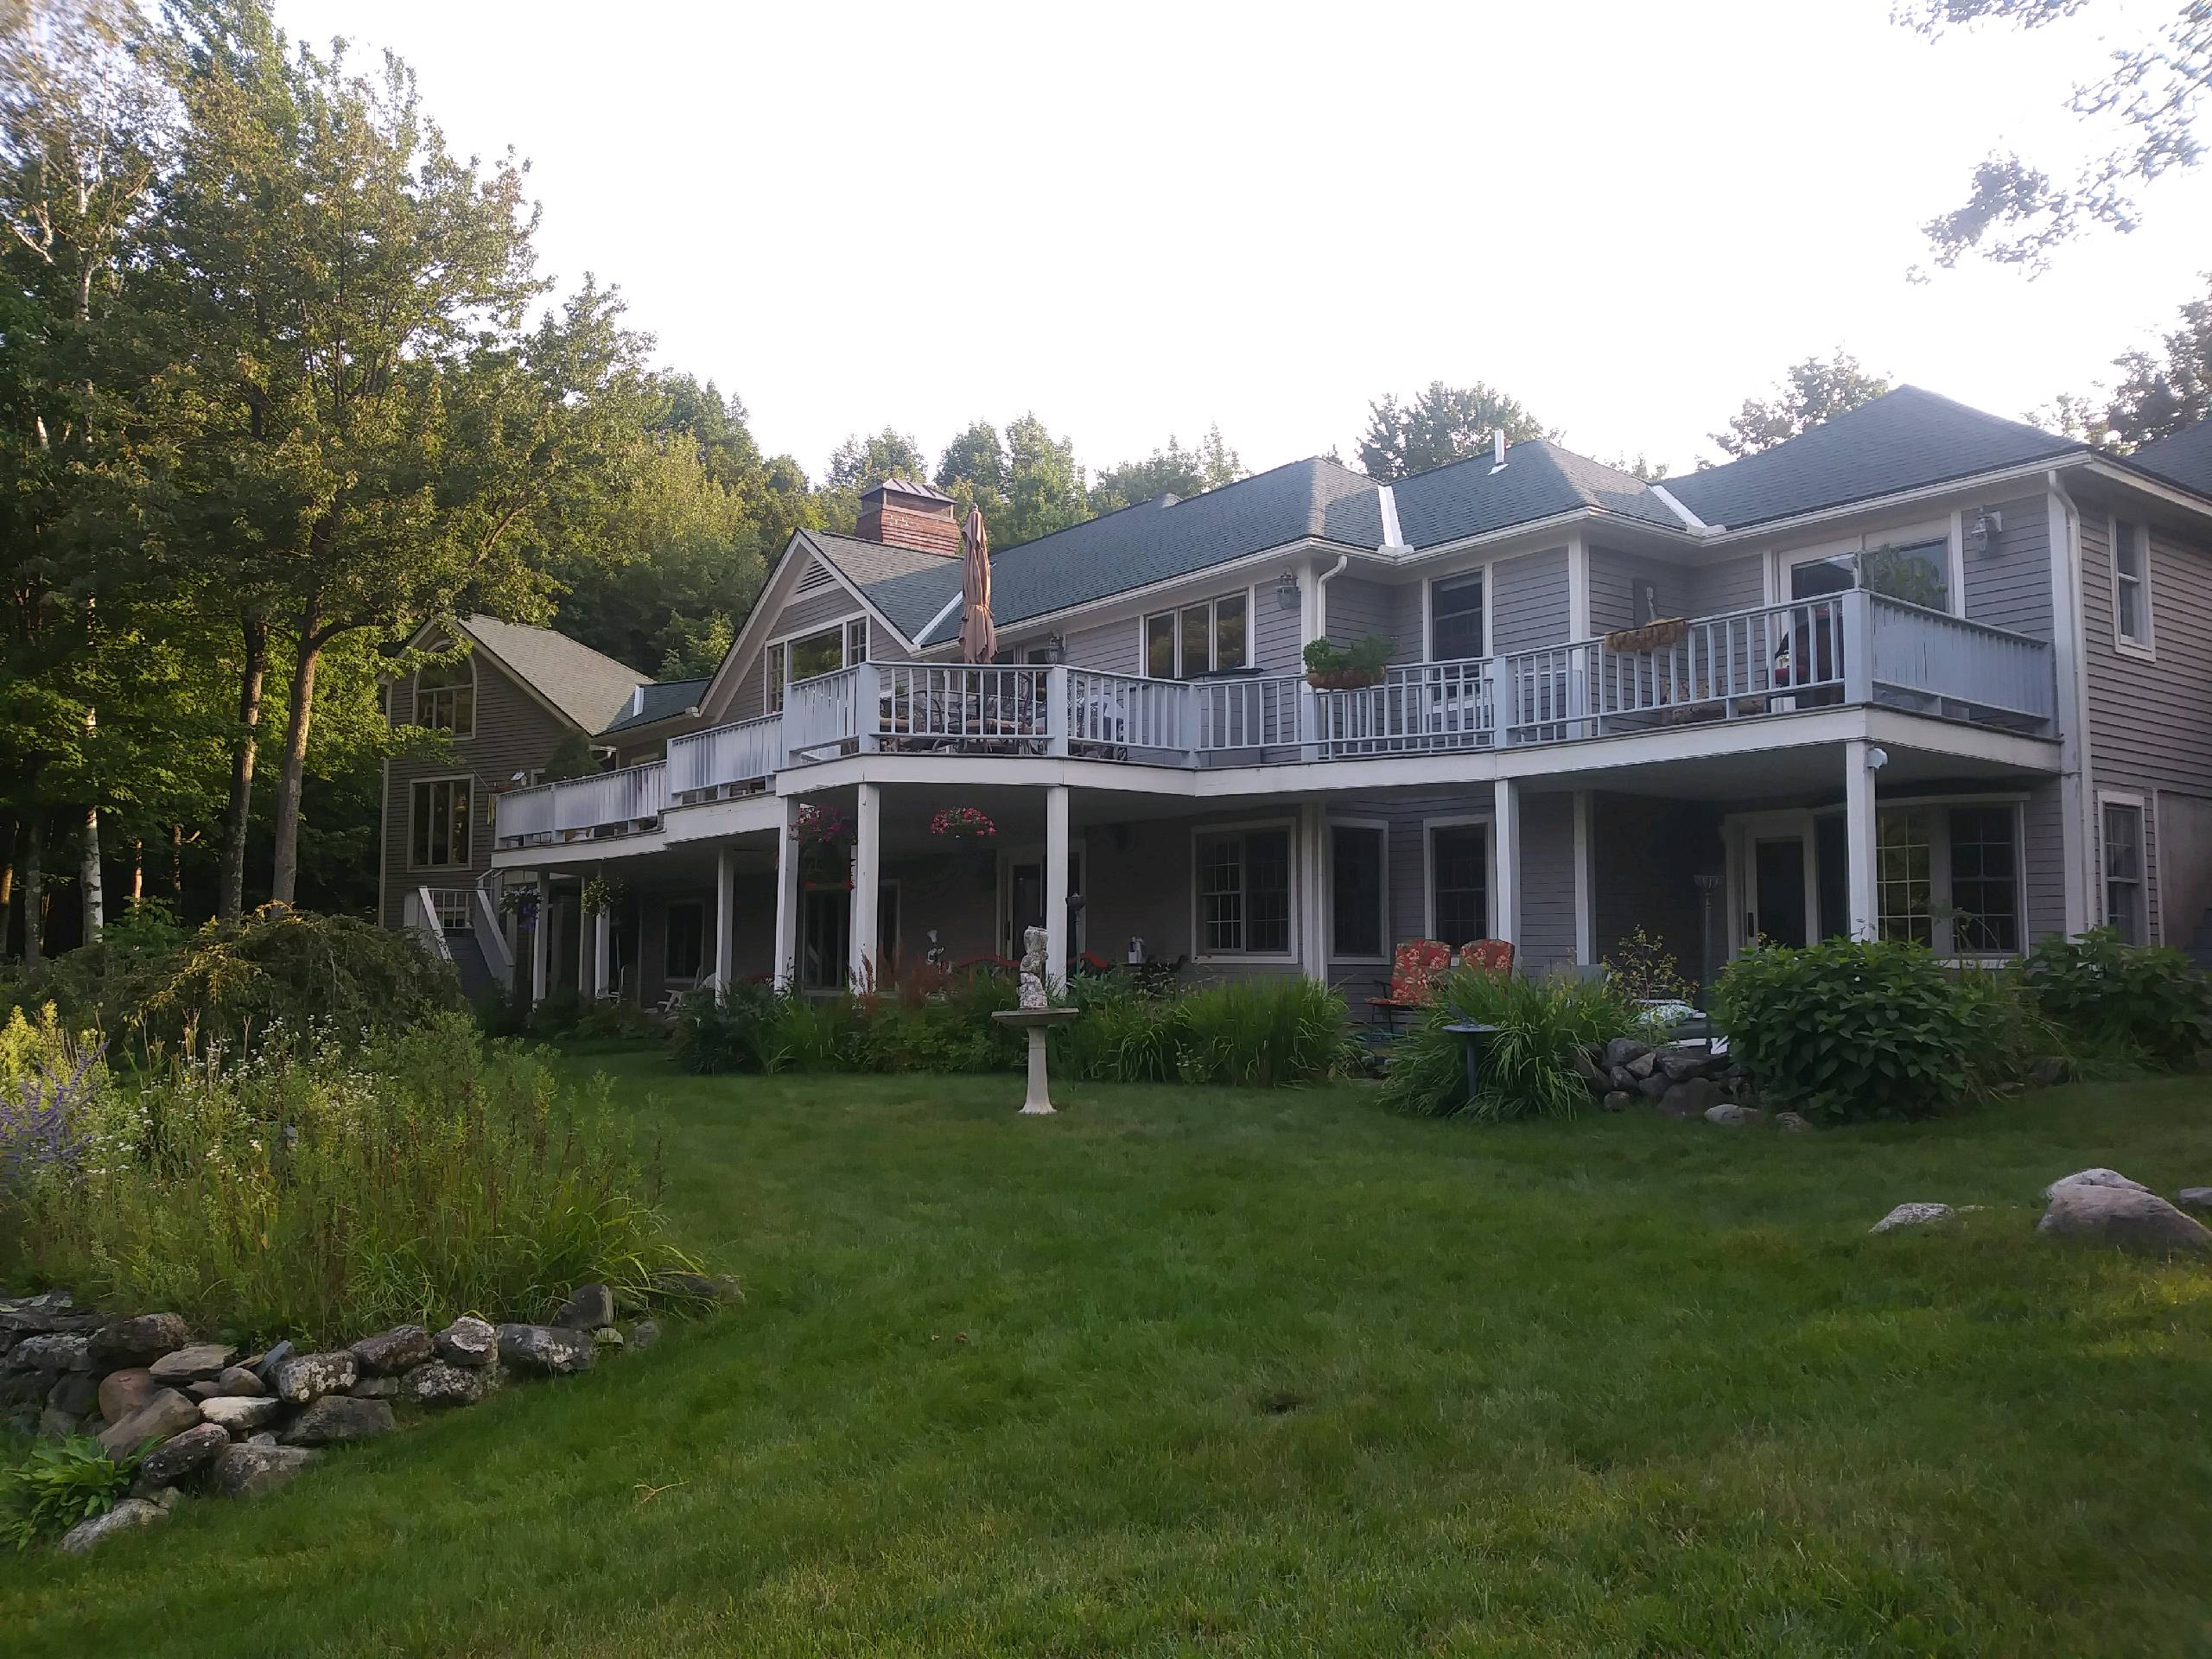 Residential Roofing | 1146 Cherry Valley Rd, Gilford NH | by A.S.A.P. Roofing NH